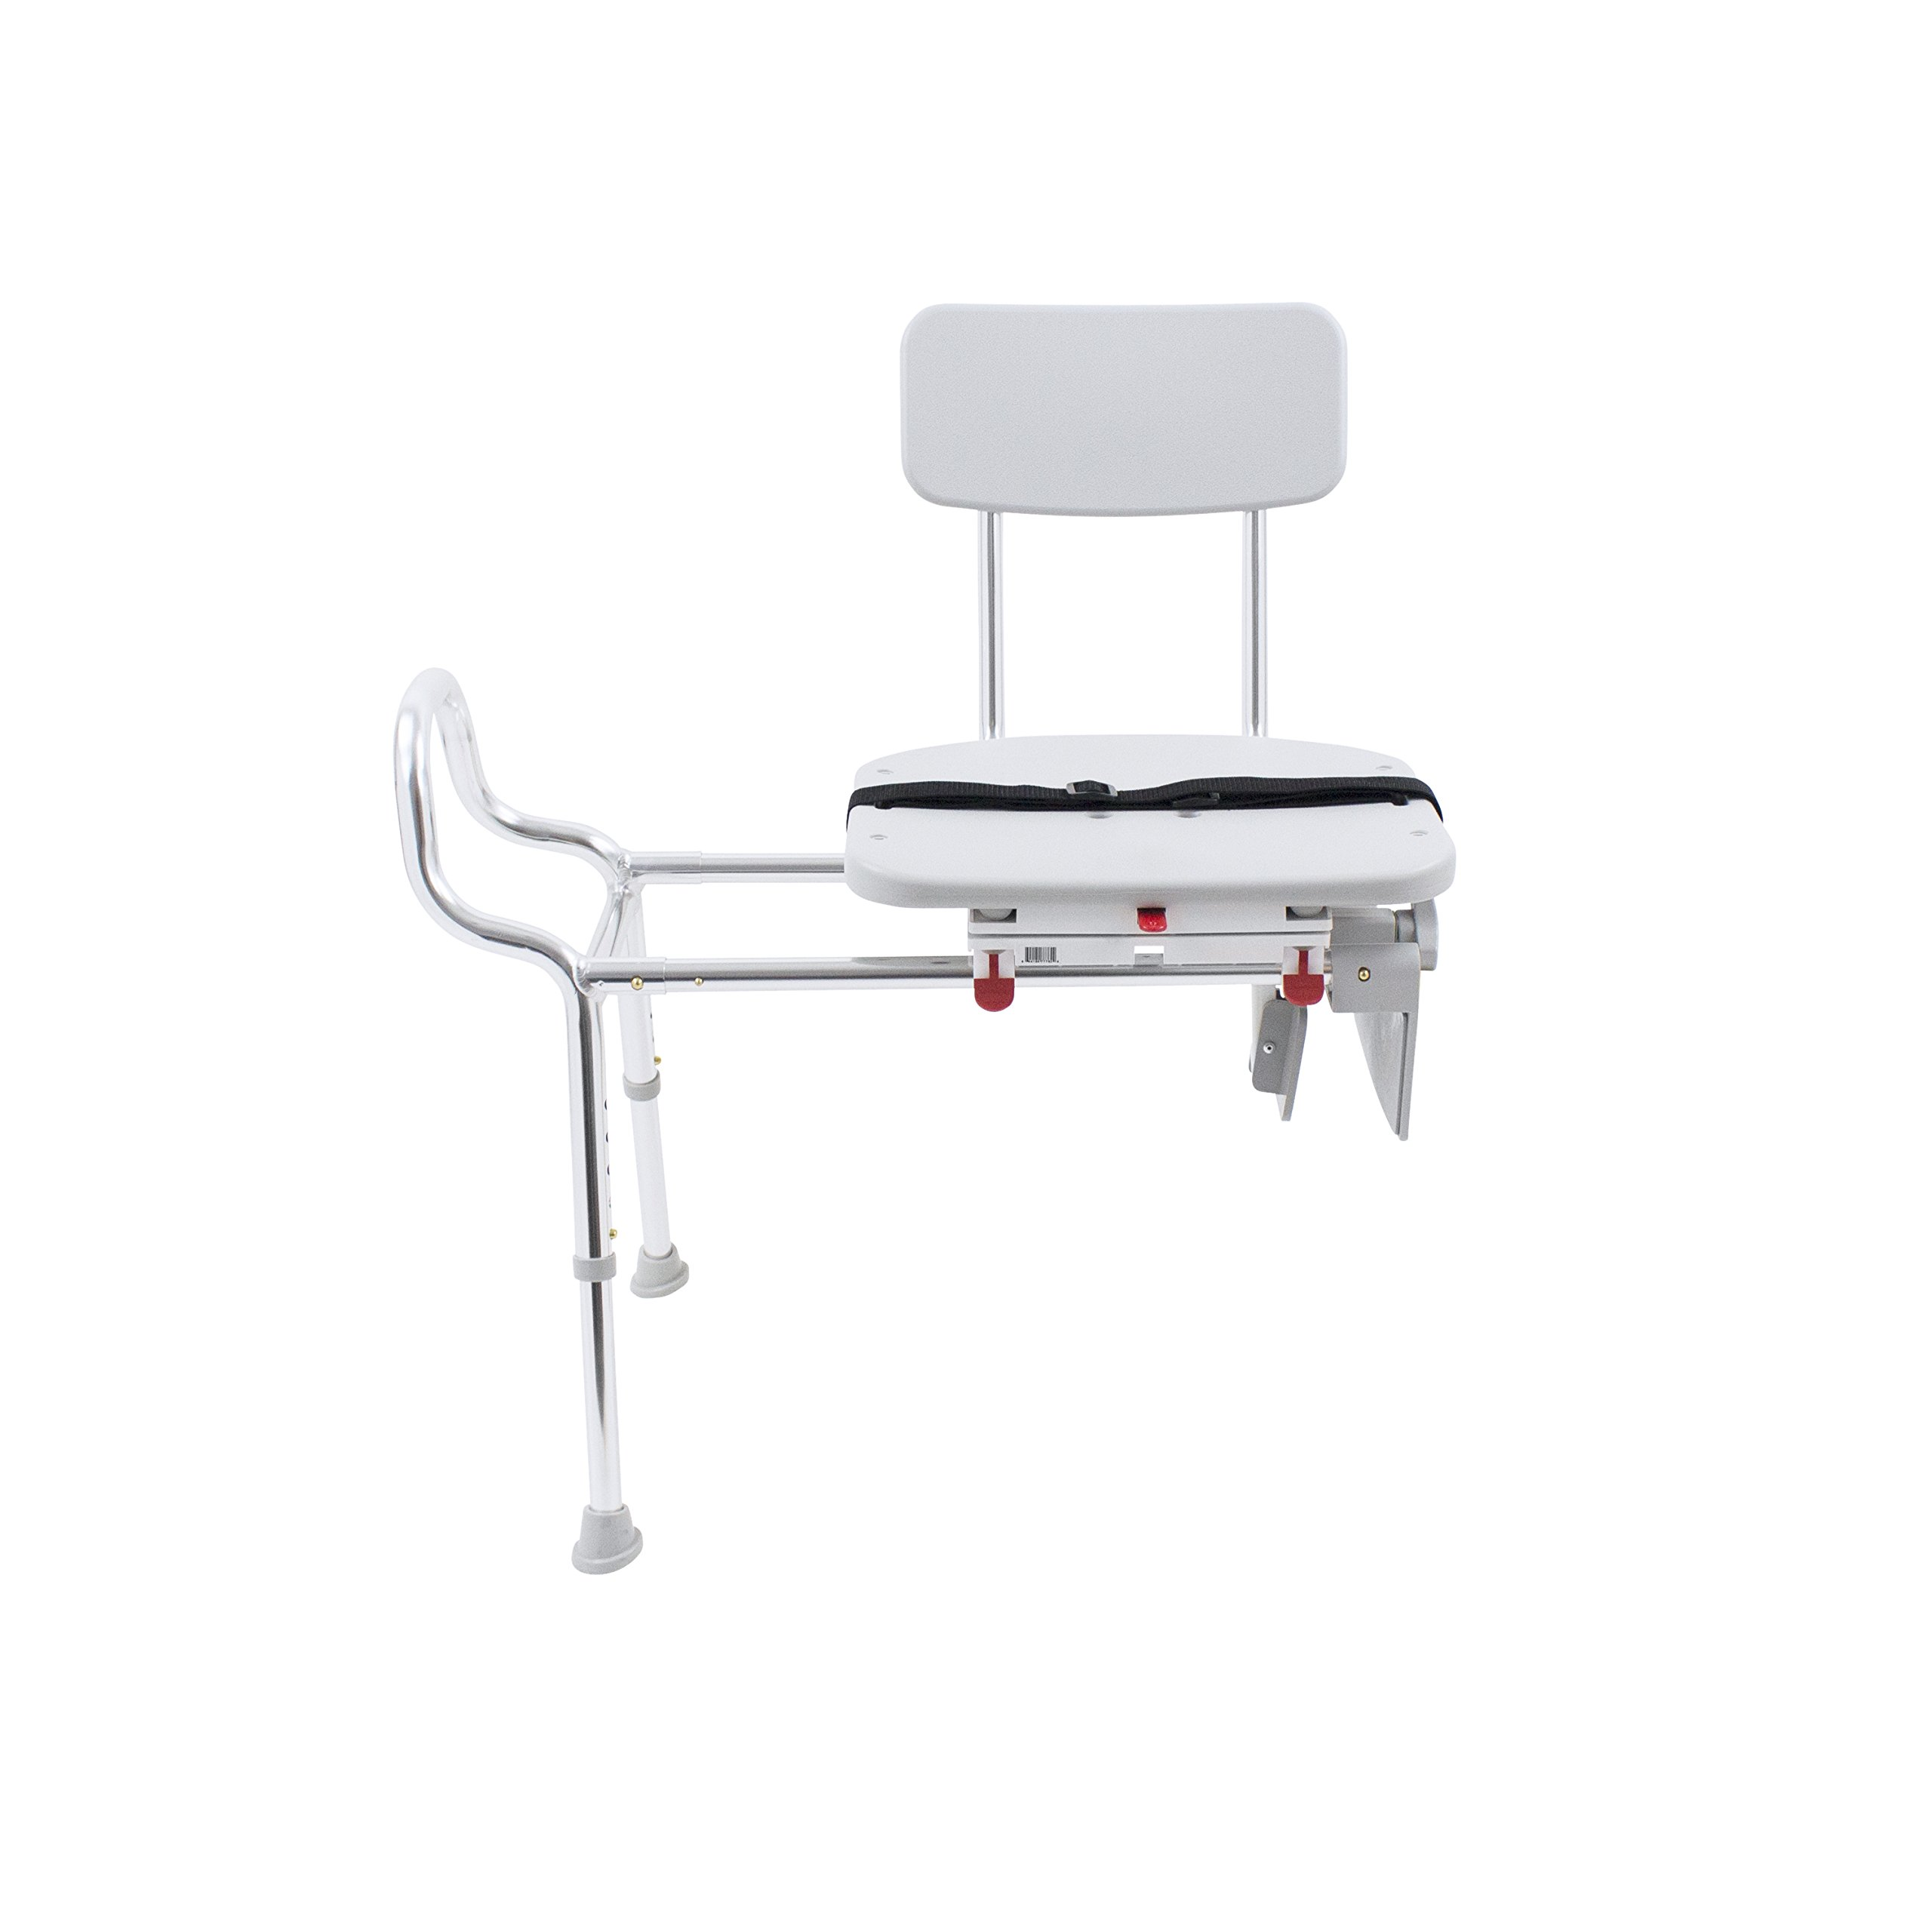 Eagle Health Supplies Tub-Mount Swivel Sliding Shower Transfer Bench, No Tool Assembly by Eagle Health Supplies (Image #3)